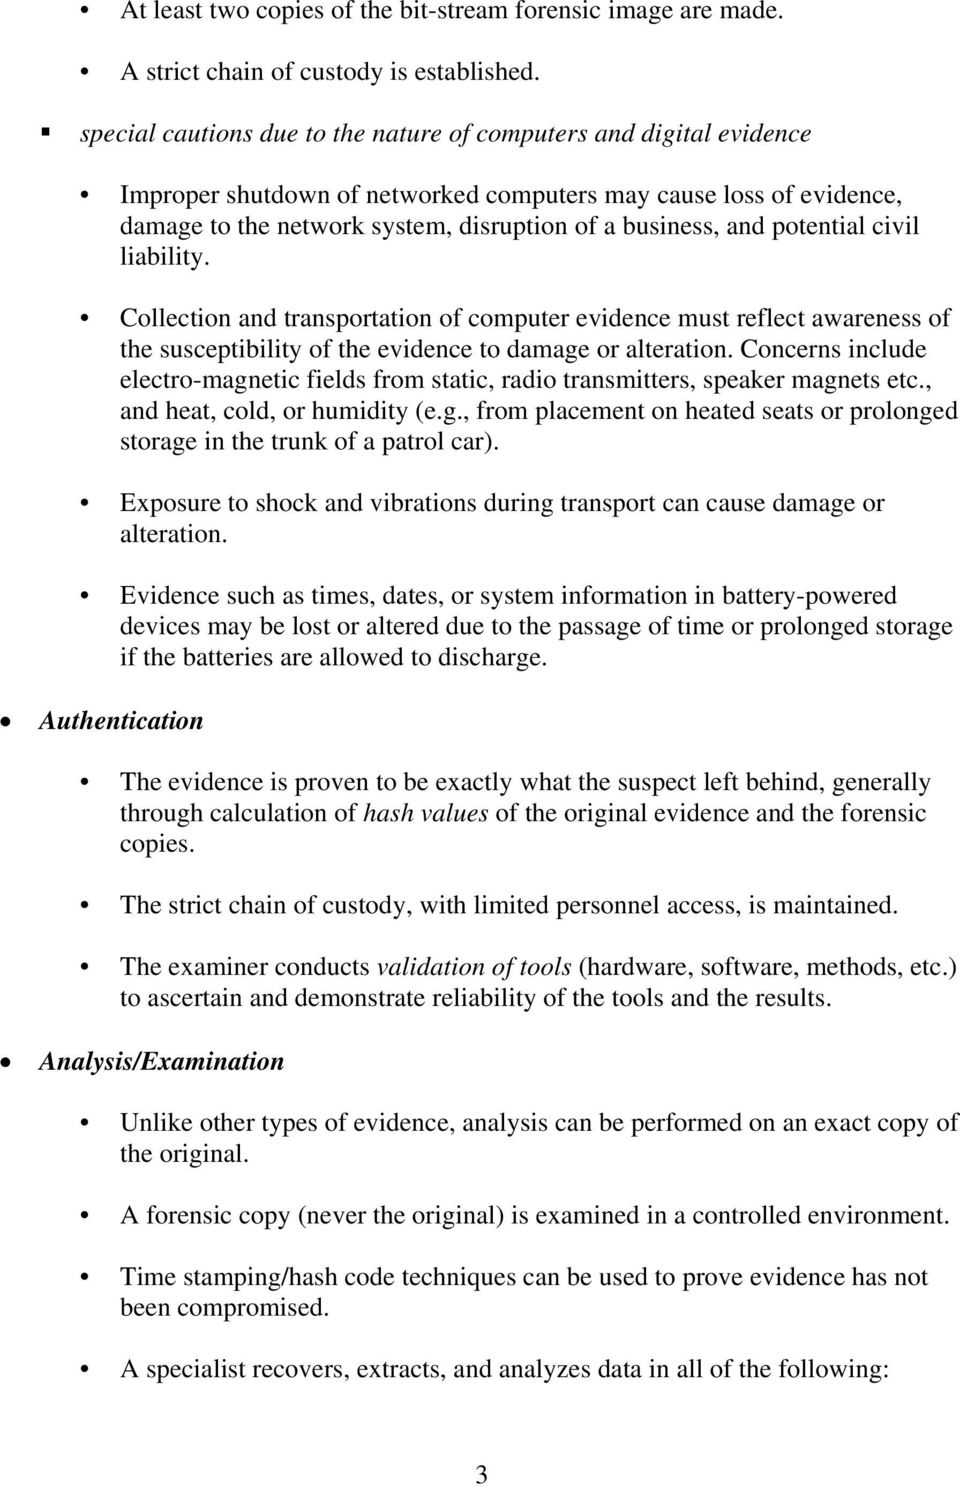 potential civil liability. Collection and transportation of computer evidence must reflect awareness of the susceptibility of the evidence to damage or alteration.